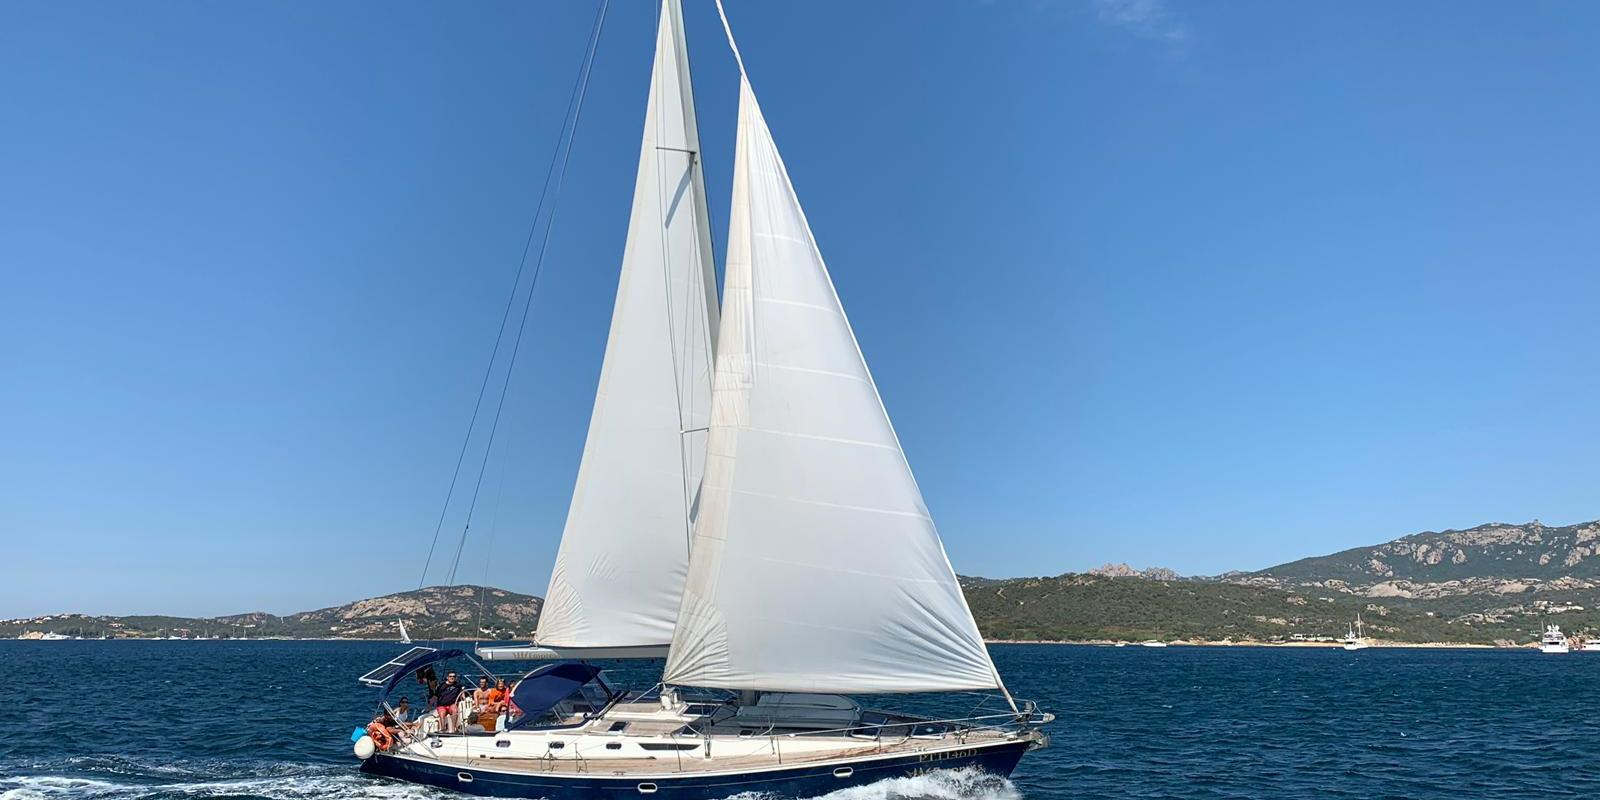 School cruise, sailing course between southern Corsica and northern Sardinia